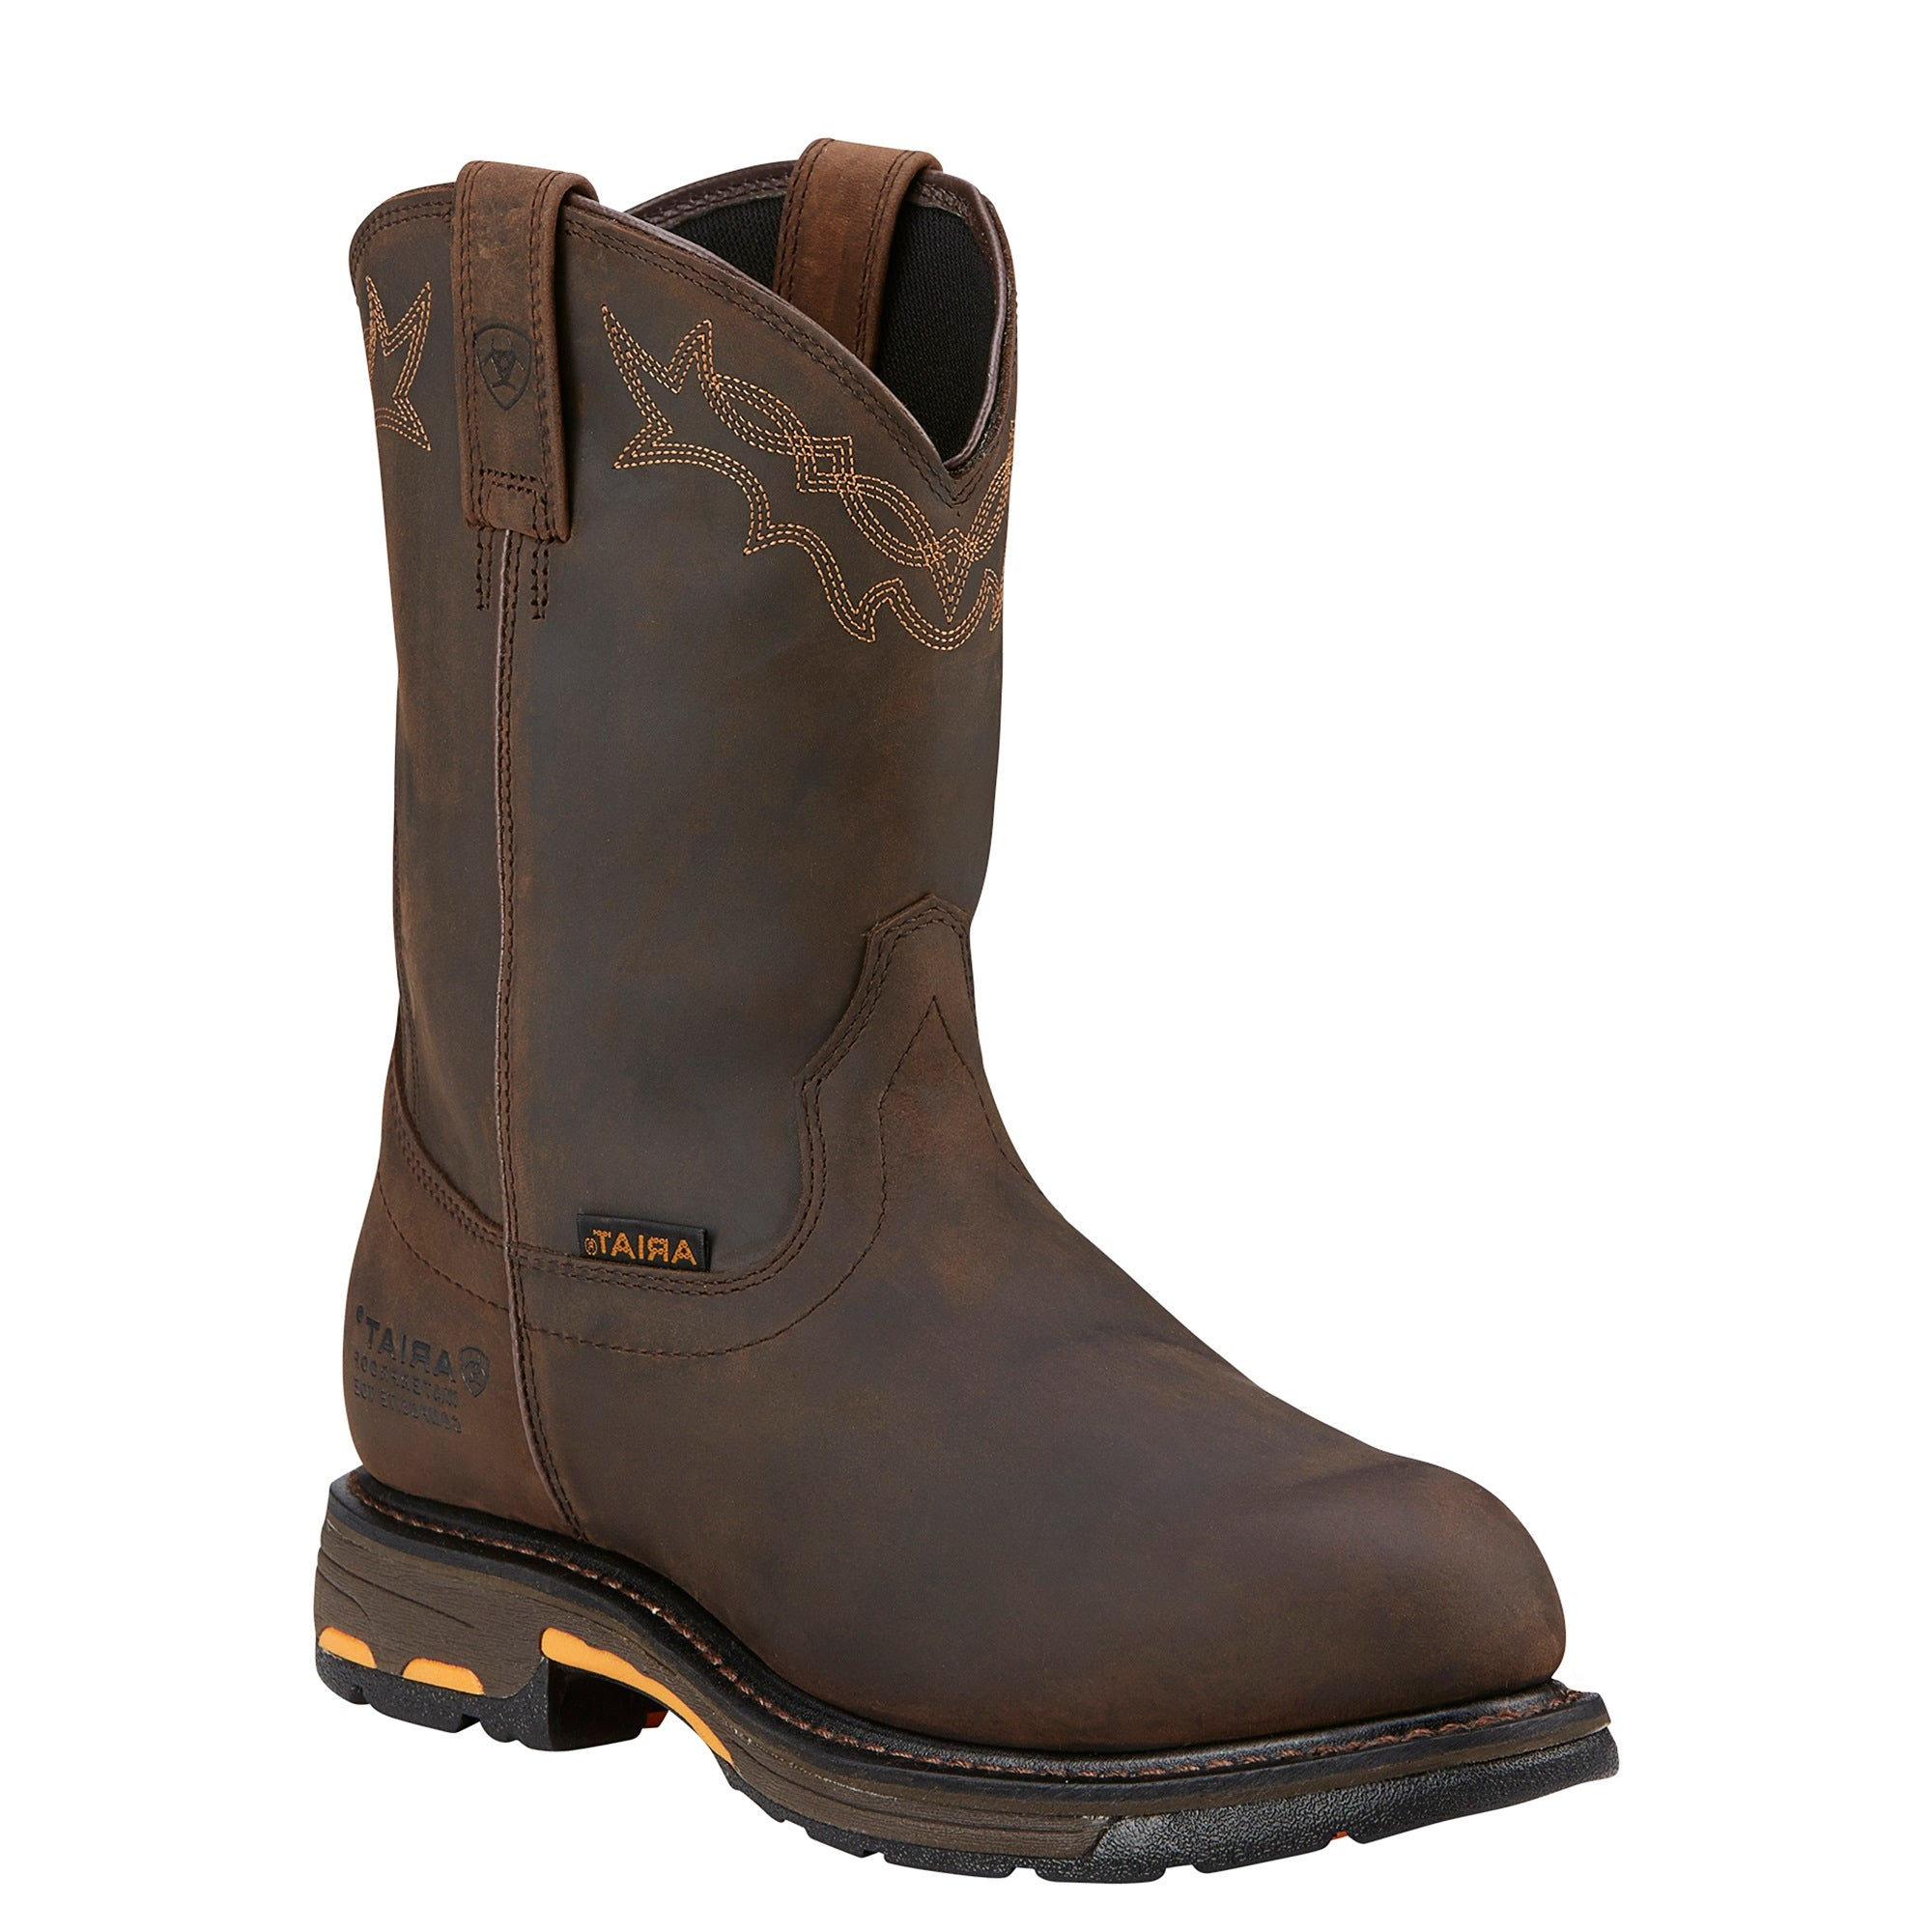 ae50025bcbb https://www.wildwestbootstore.com/ daily https://www ...